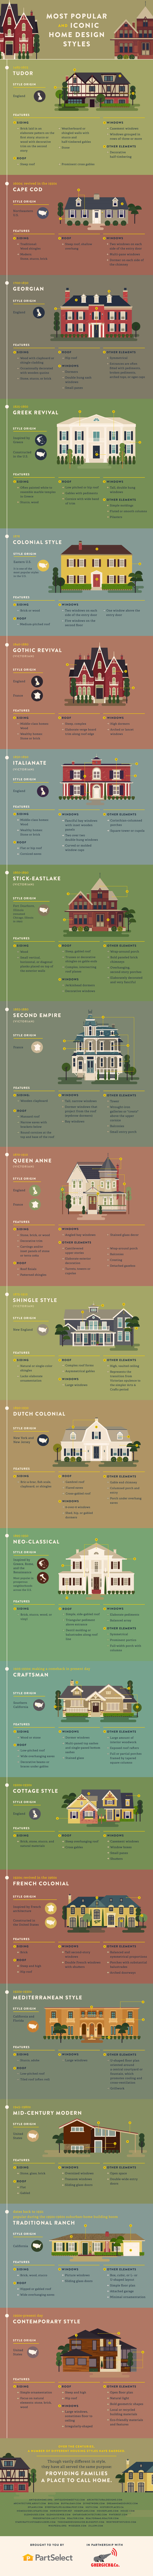 global vernacular homes infographic